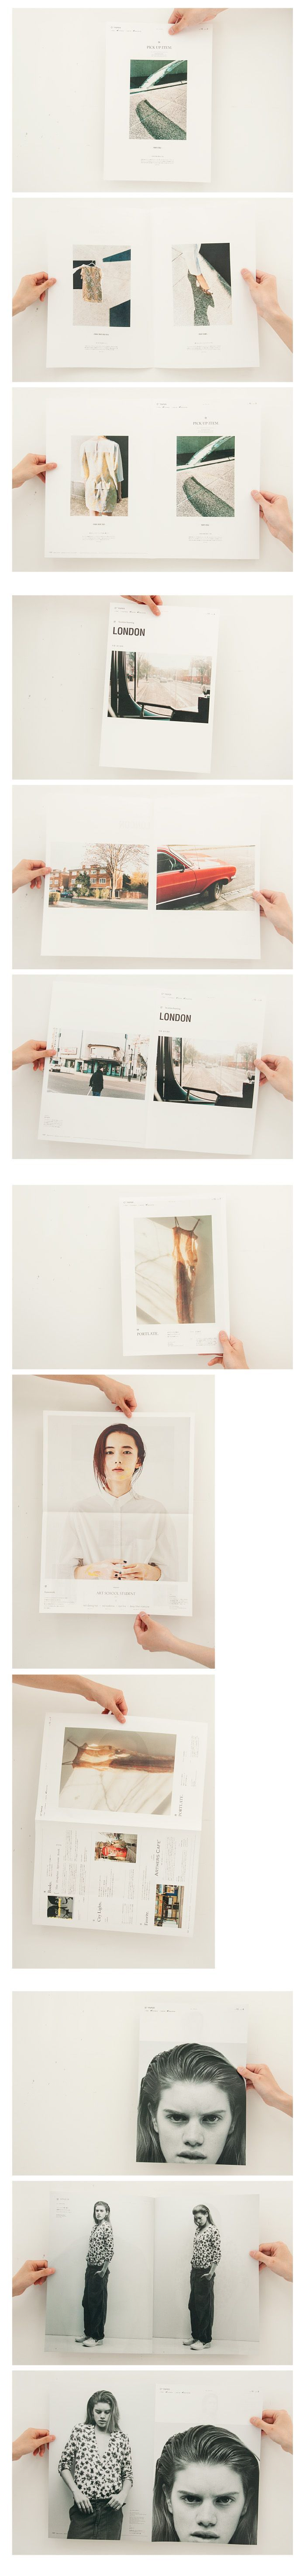 The white space around these photographs creates a beautiful and natural modern page layout. Would be great for trendy and modern advertising creatives. #advertising #modern #graphicdesign